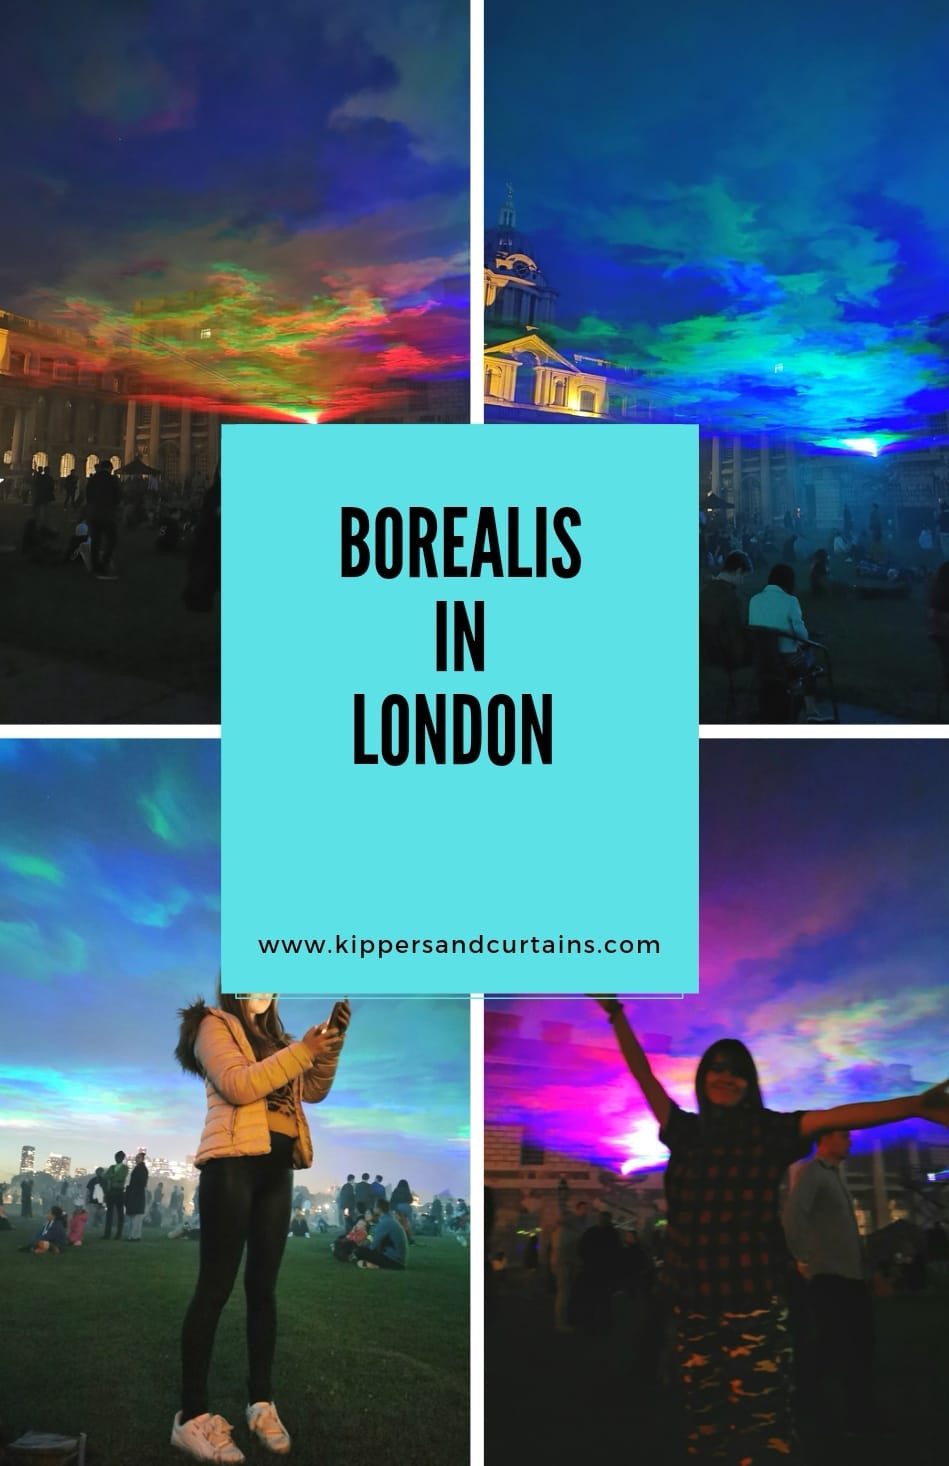 Borealis - The Northern Lights in London